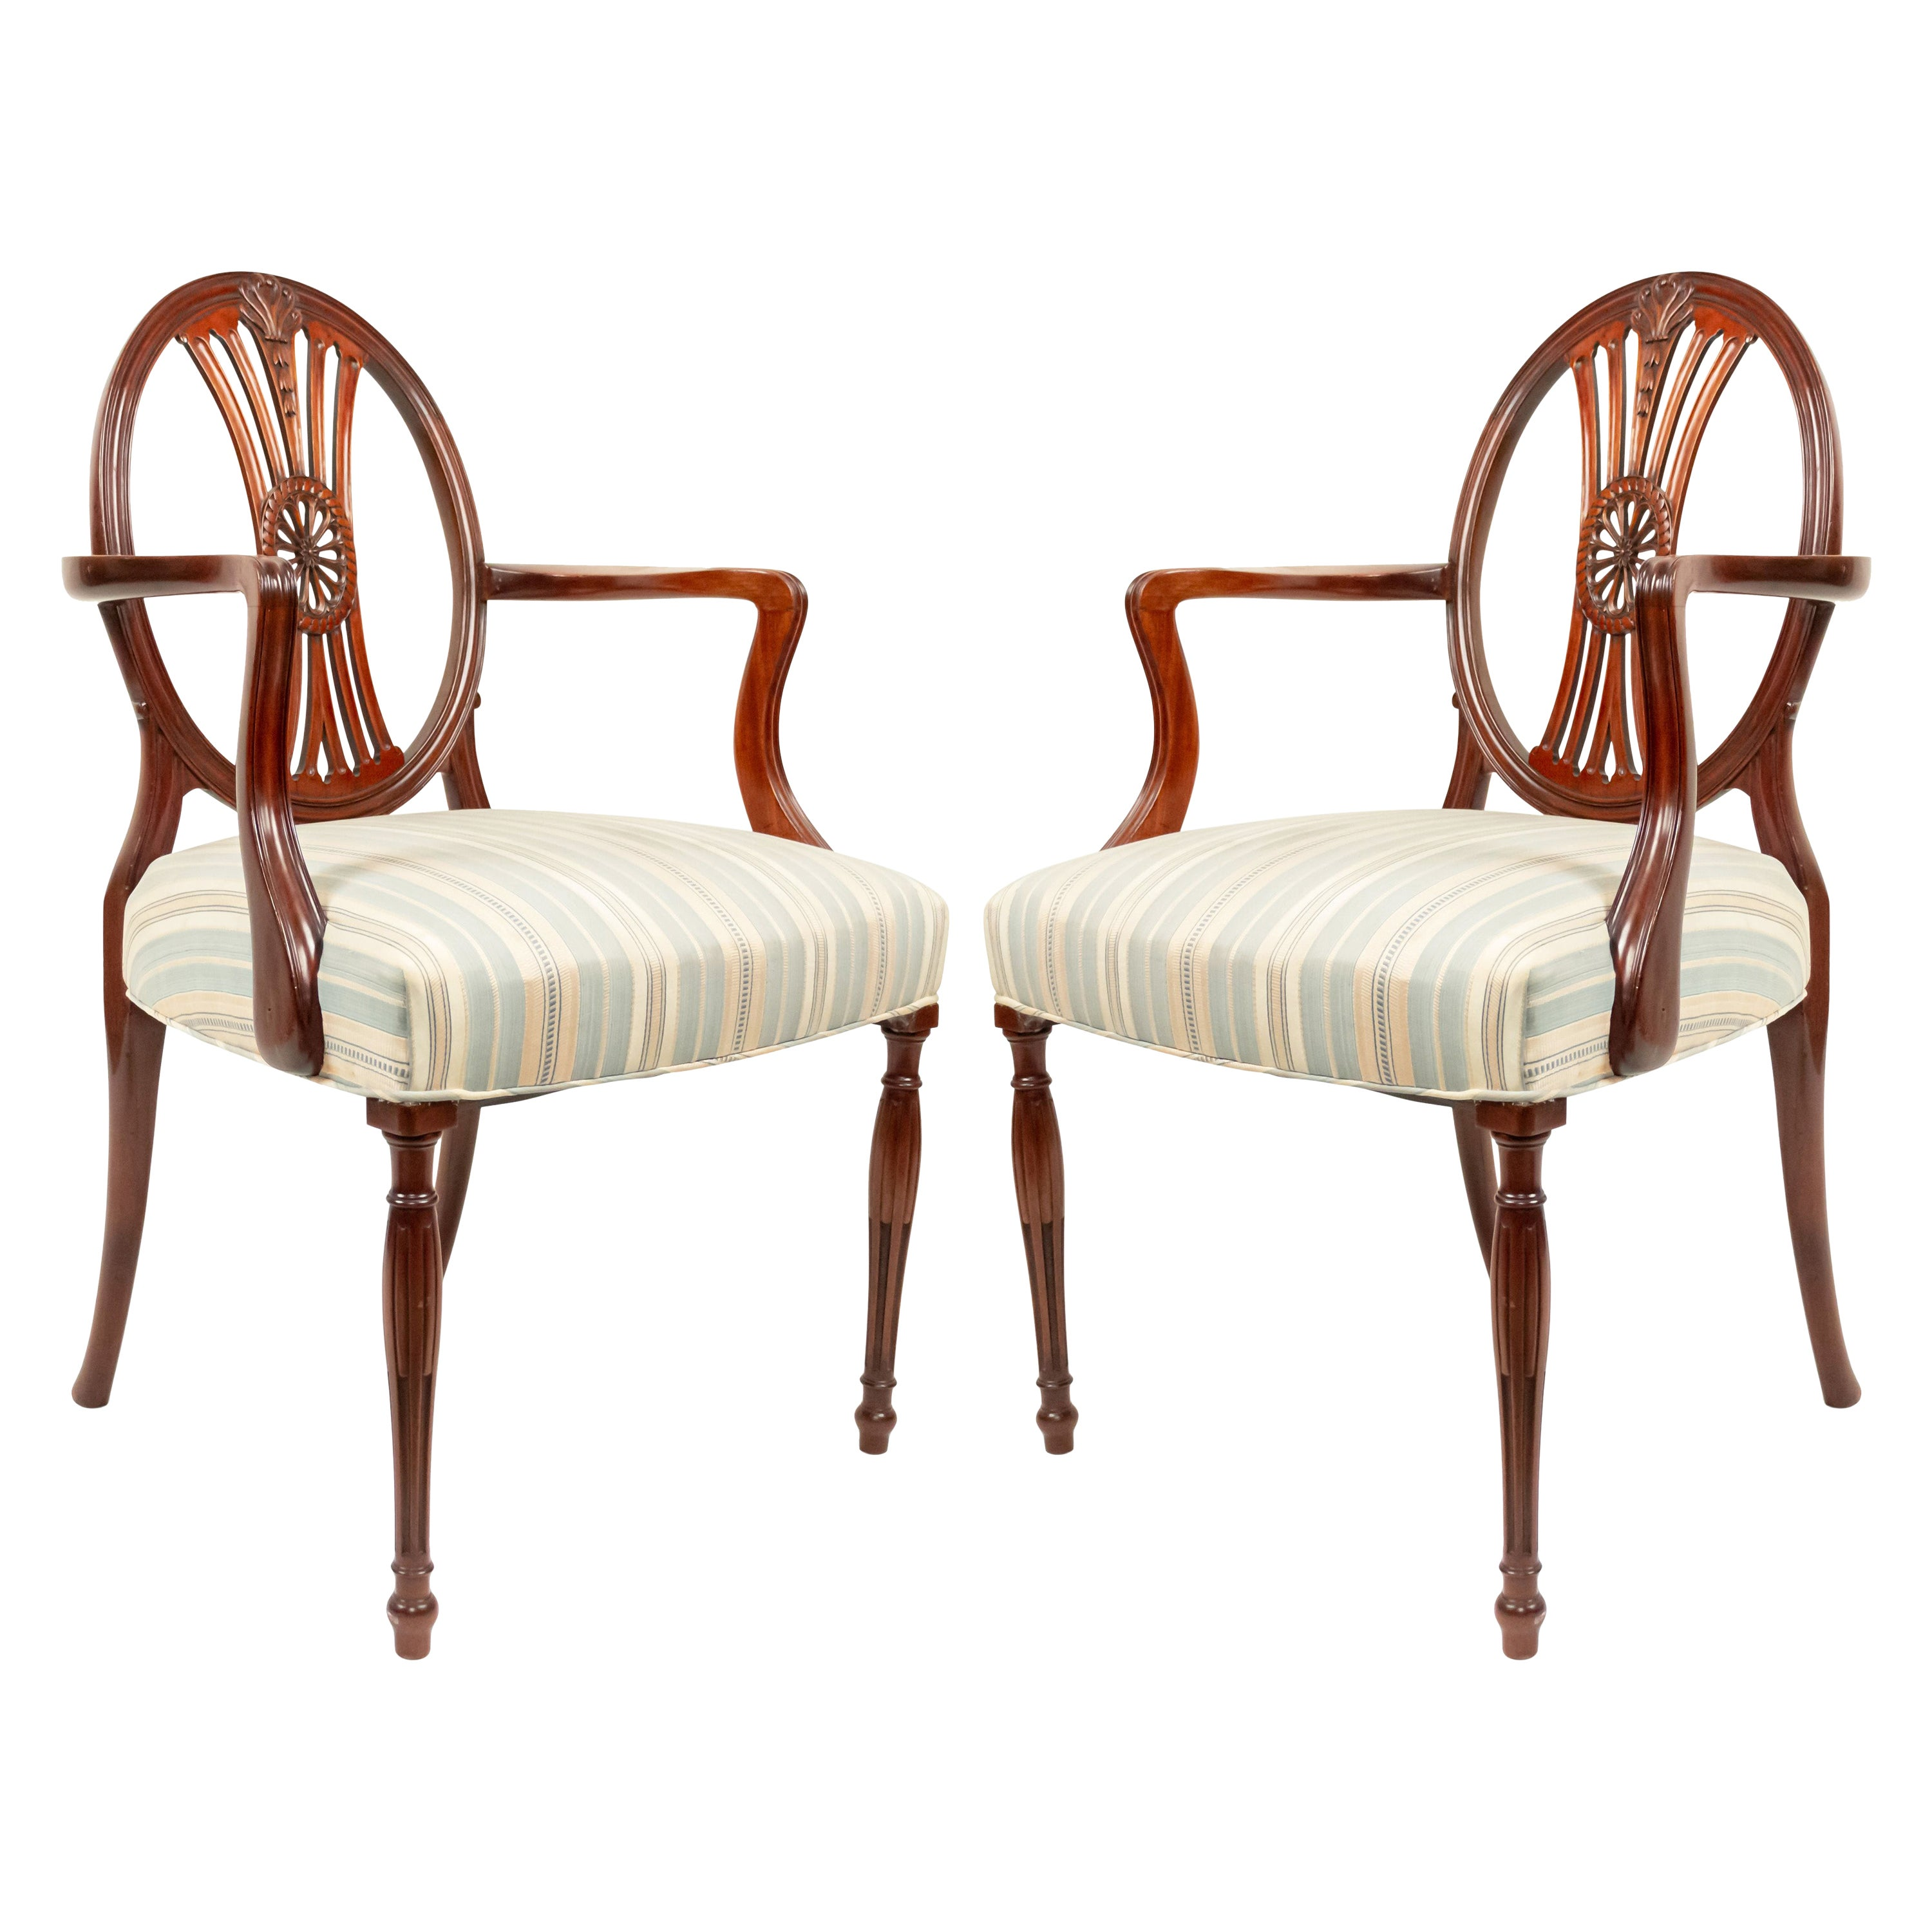 English Sheraton Mahogany Medallion Chairs